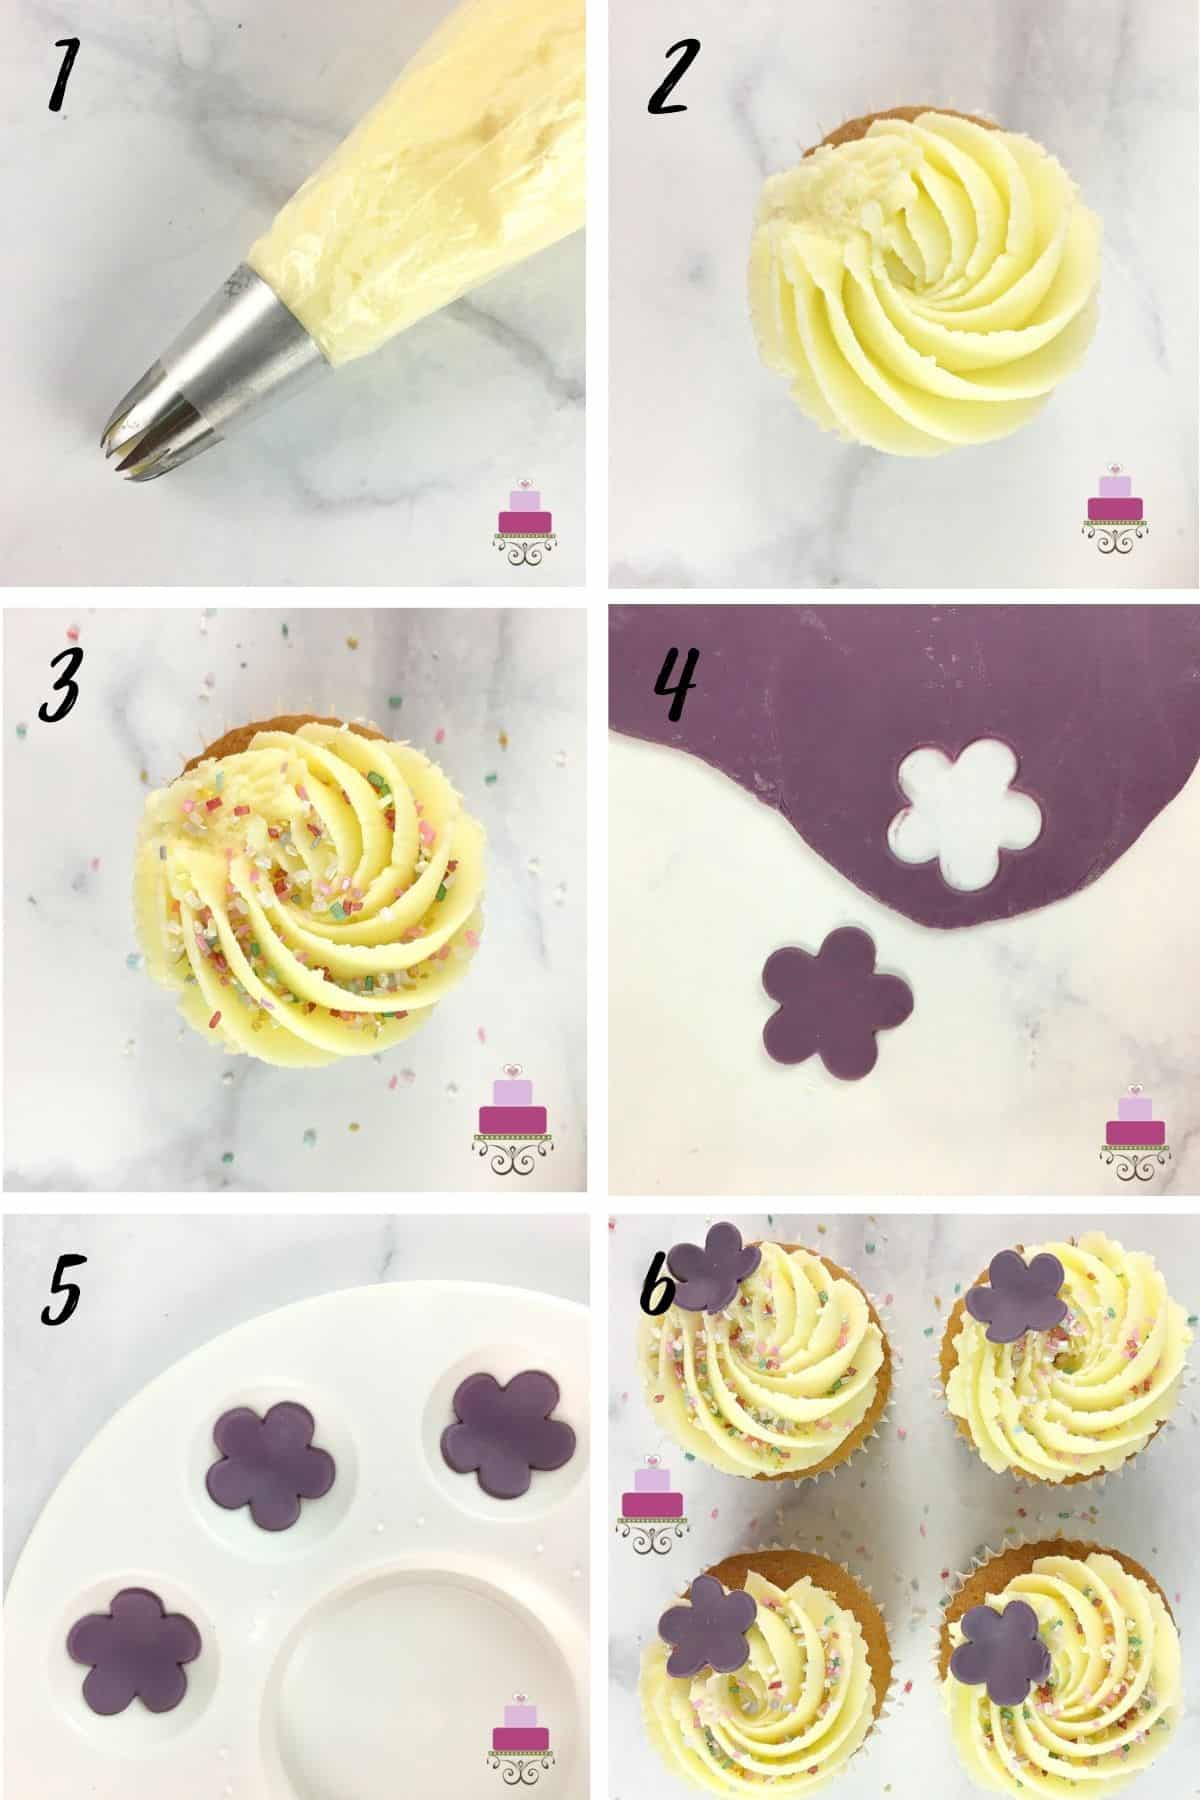 A poster of 6 images showing how to decorate a cupcake with buttercream swirl, sprinkles and a 5 petal fondant flower in purple.